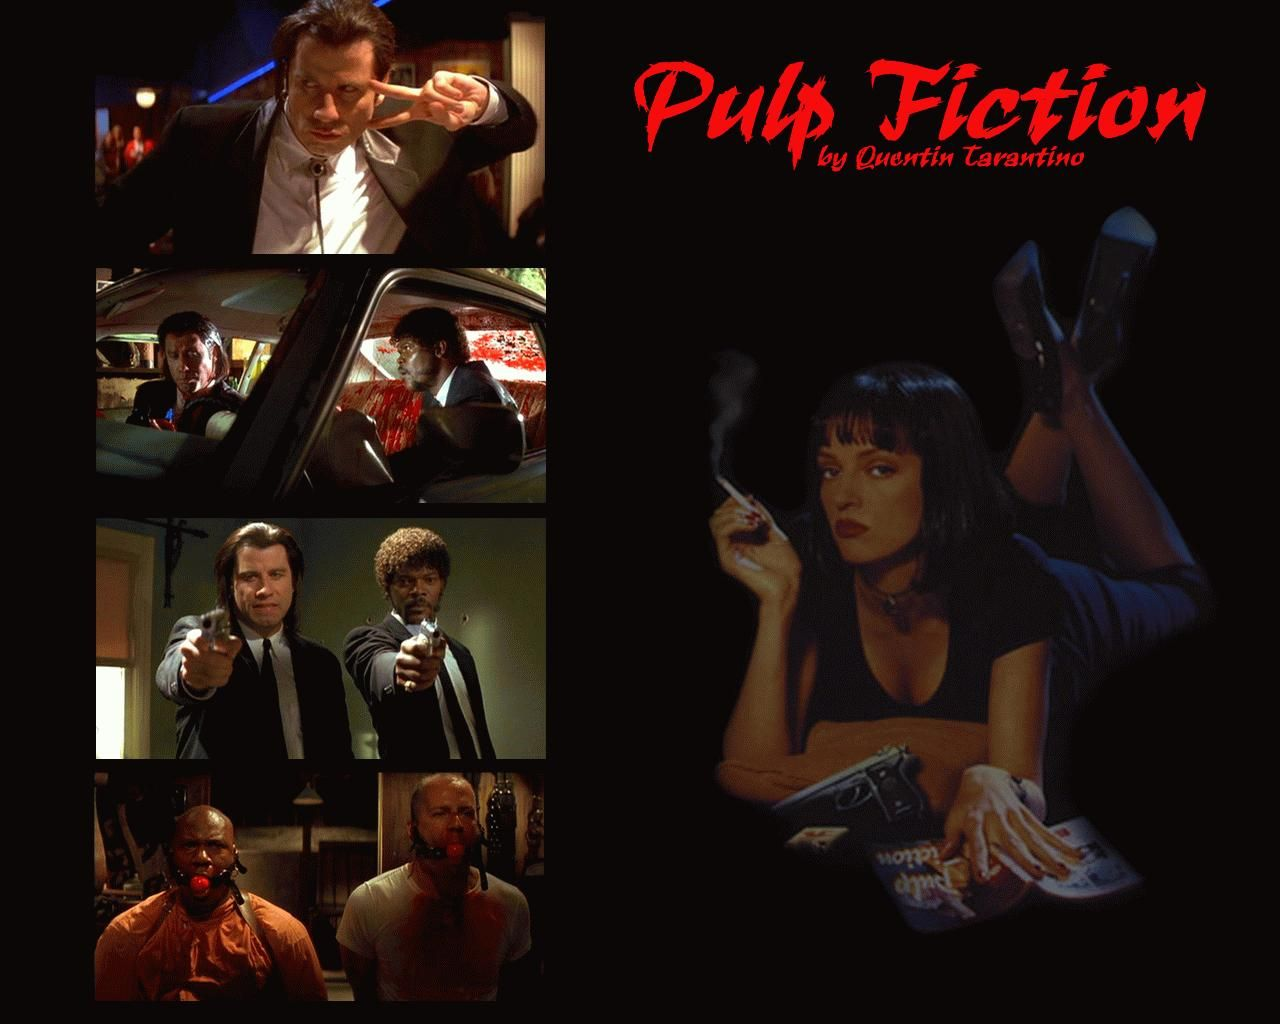 an introduction to the analysis of the film pulp fiction Pulp fiction (1994) is an american crime film directed by quentin tarantino, who cowrote its screenplay with roger avary the film's title refers to the pulp magazines and hardboiled crime novels popular during the mid-20th century, known for their graphic violence and punchy dialogue.